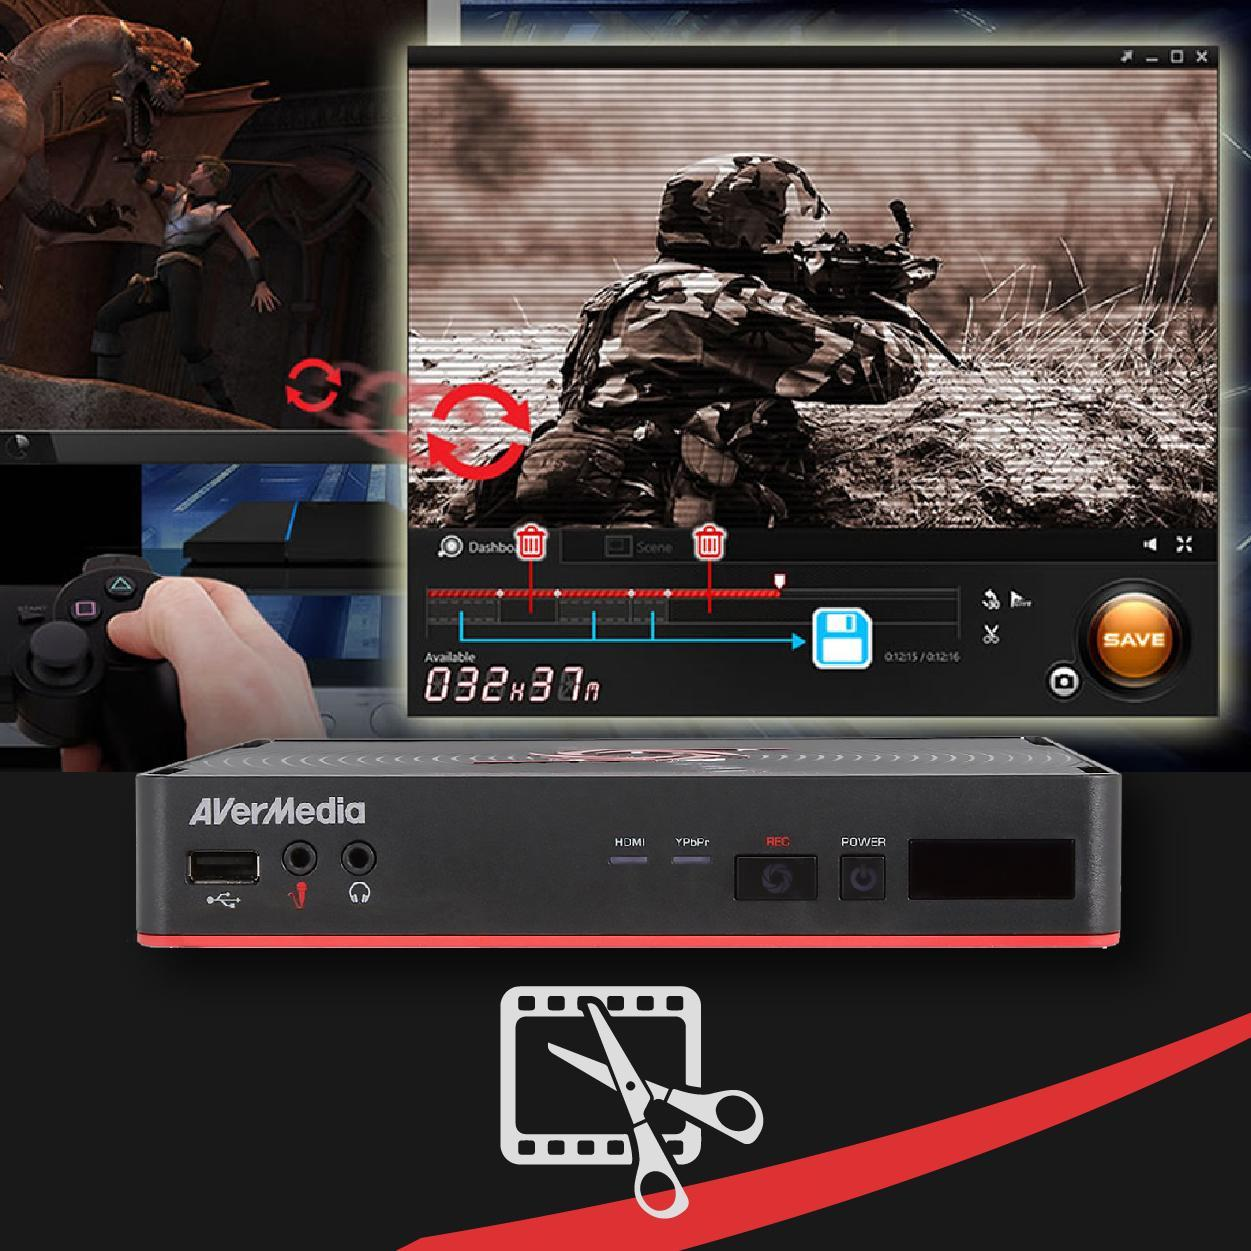 how to get twitch alerts on ps4 without capture card